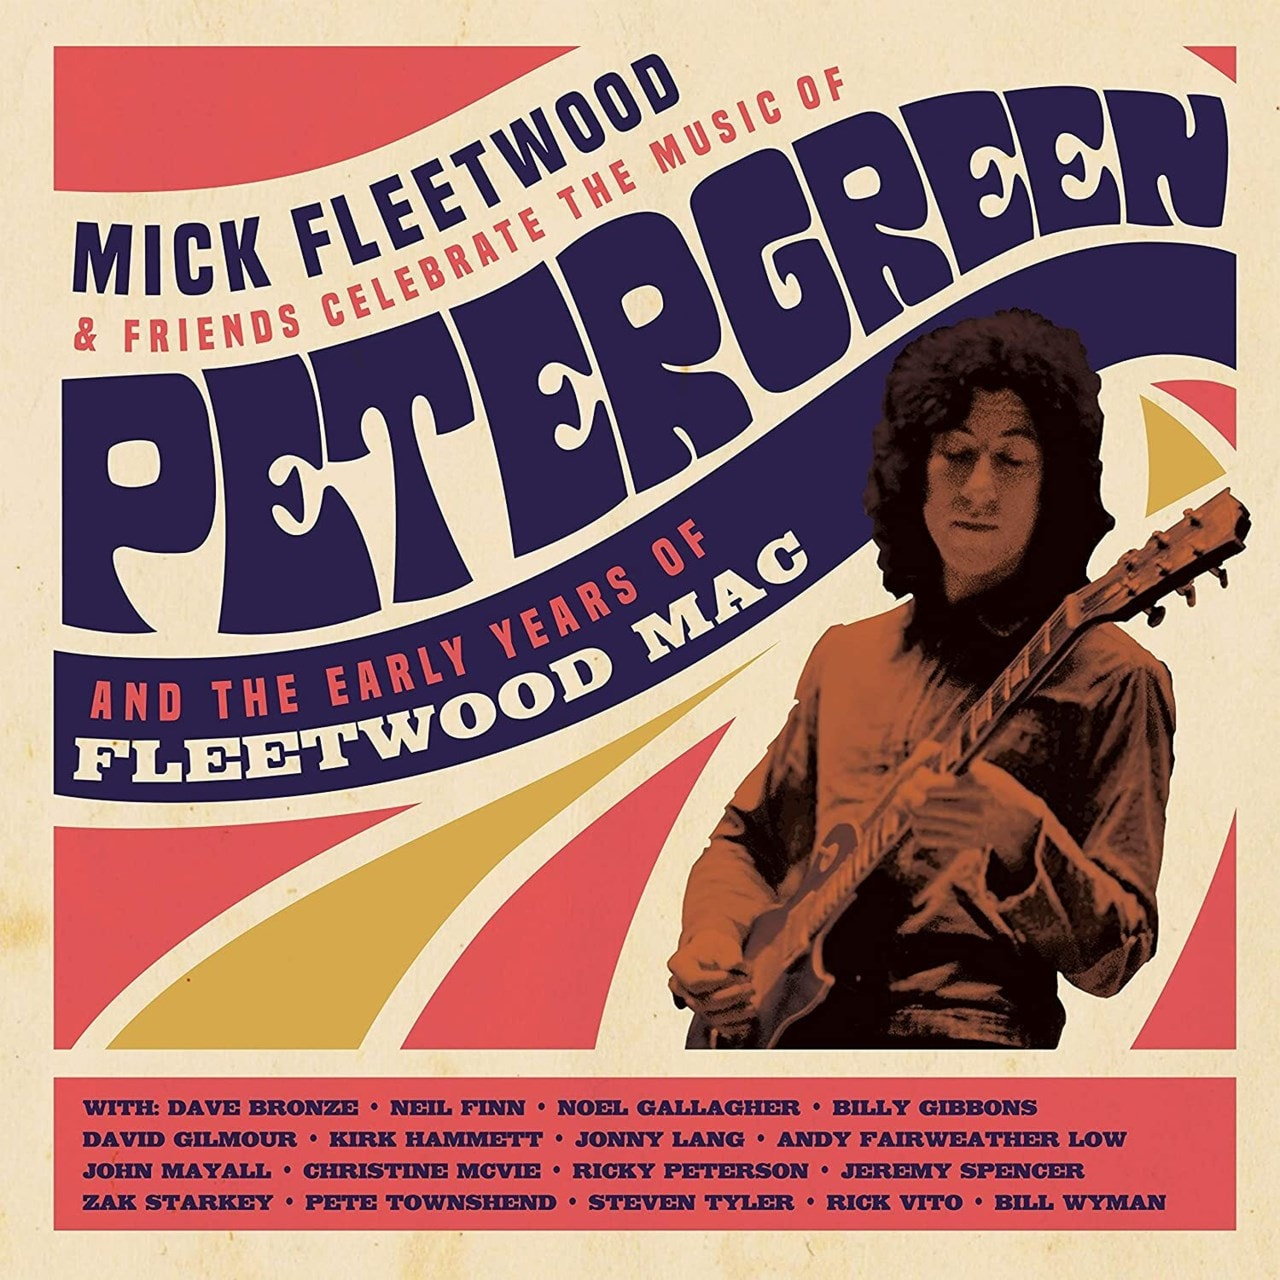 Mick Fleetwood & Friends Celebrate the Music of Peter Green And The Early Years Of Fleetwood Mac - 2 - 1